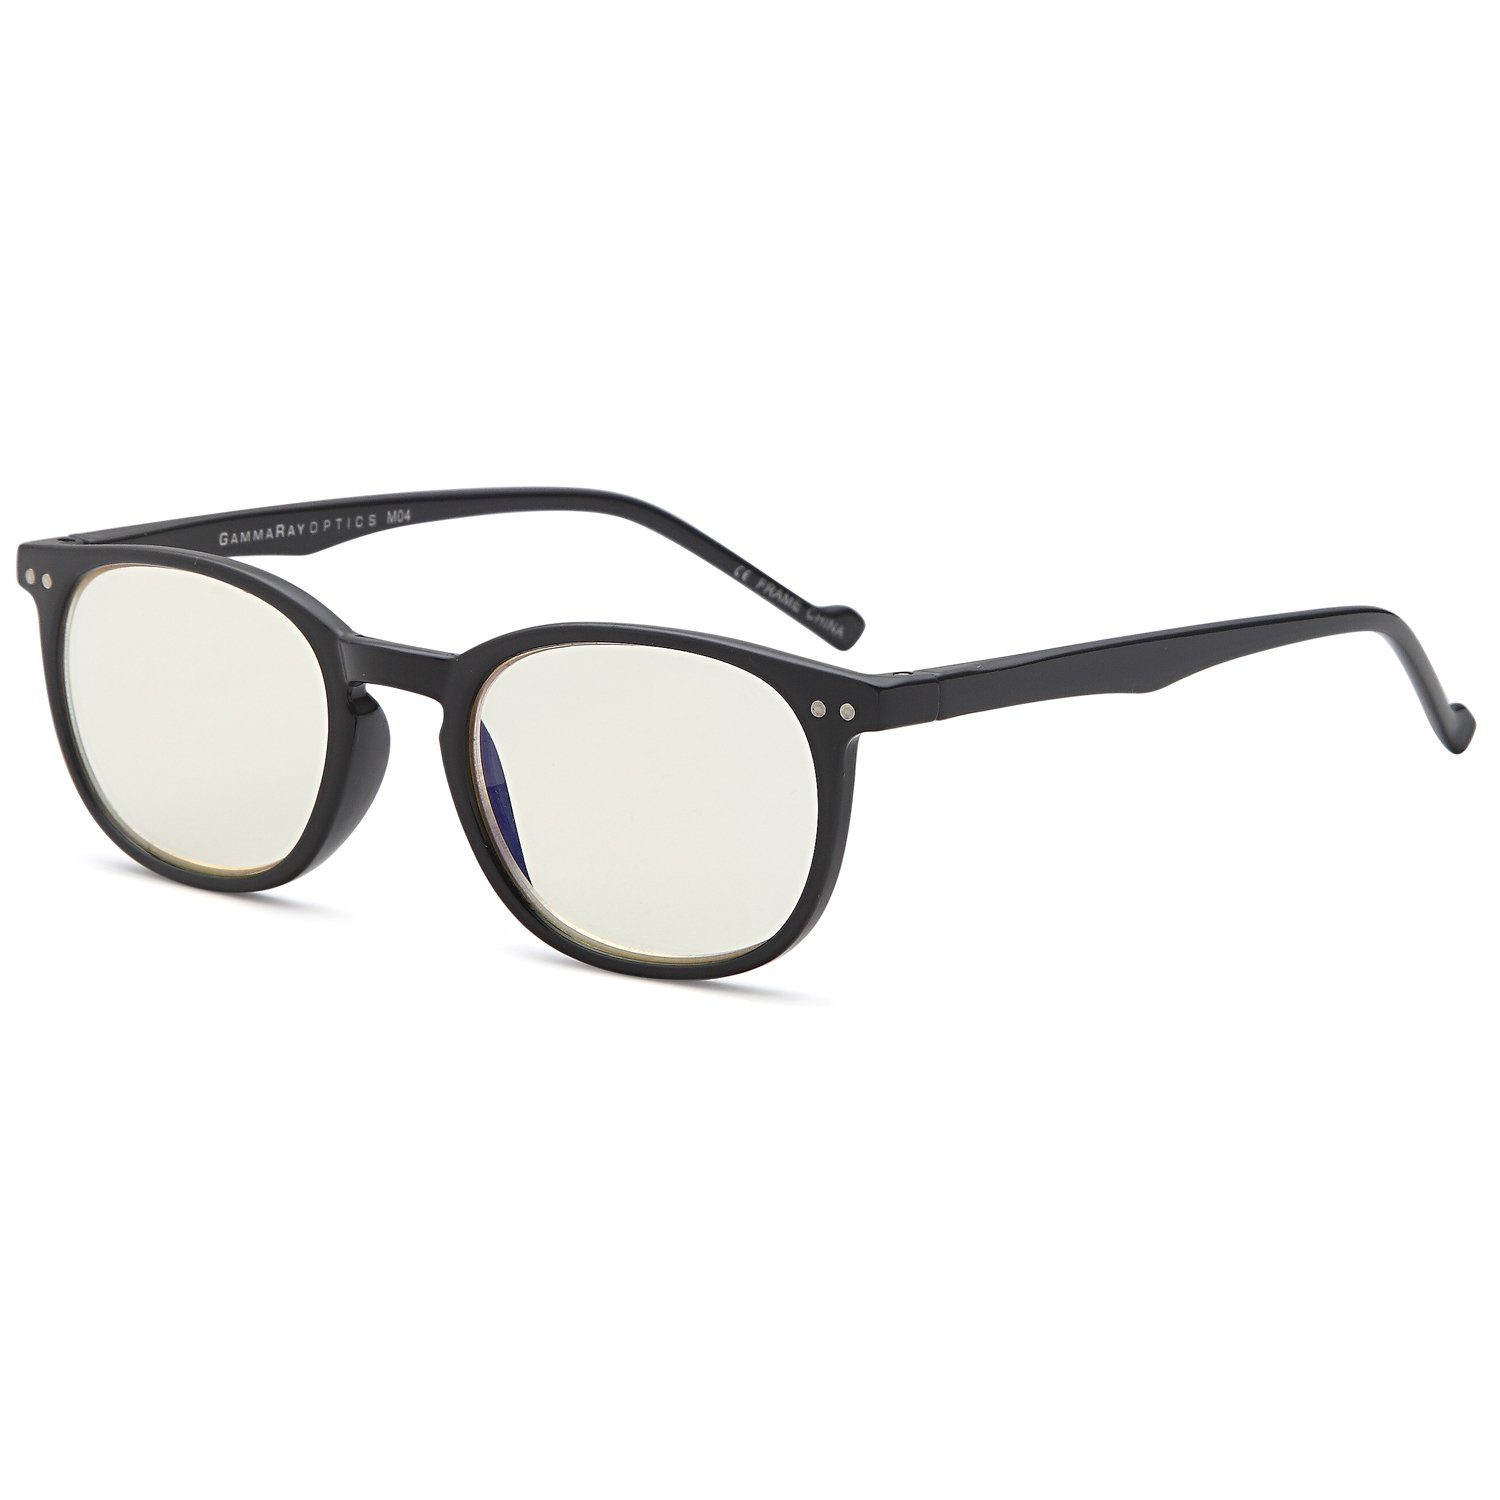 ef4313c660 Amazon.com  Gamma RAY 010 Slim Vintage Computer Readers Reading Glasses  Anti Reflective Anti Glare Anti Eyestrain Lens for Digital Screens